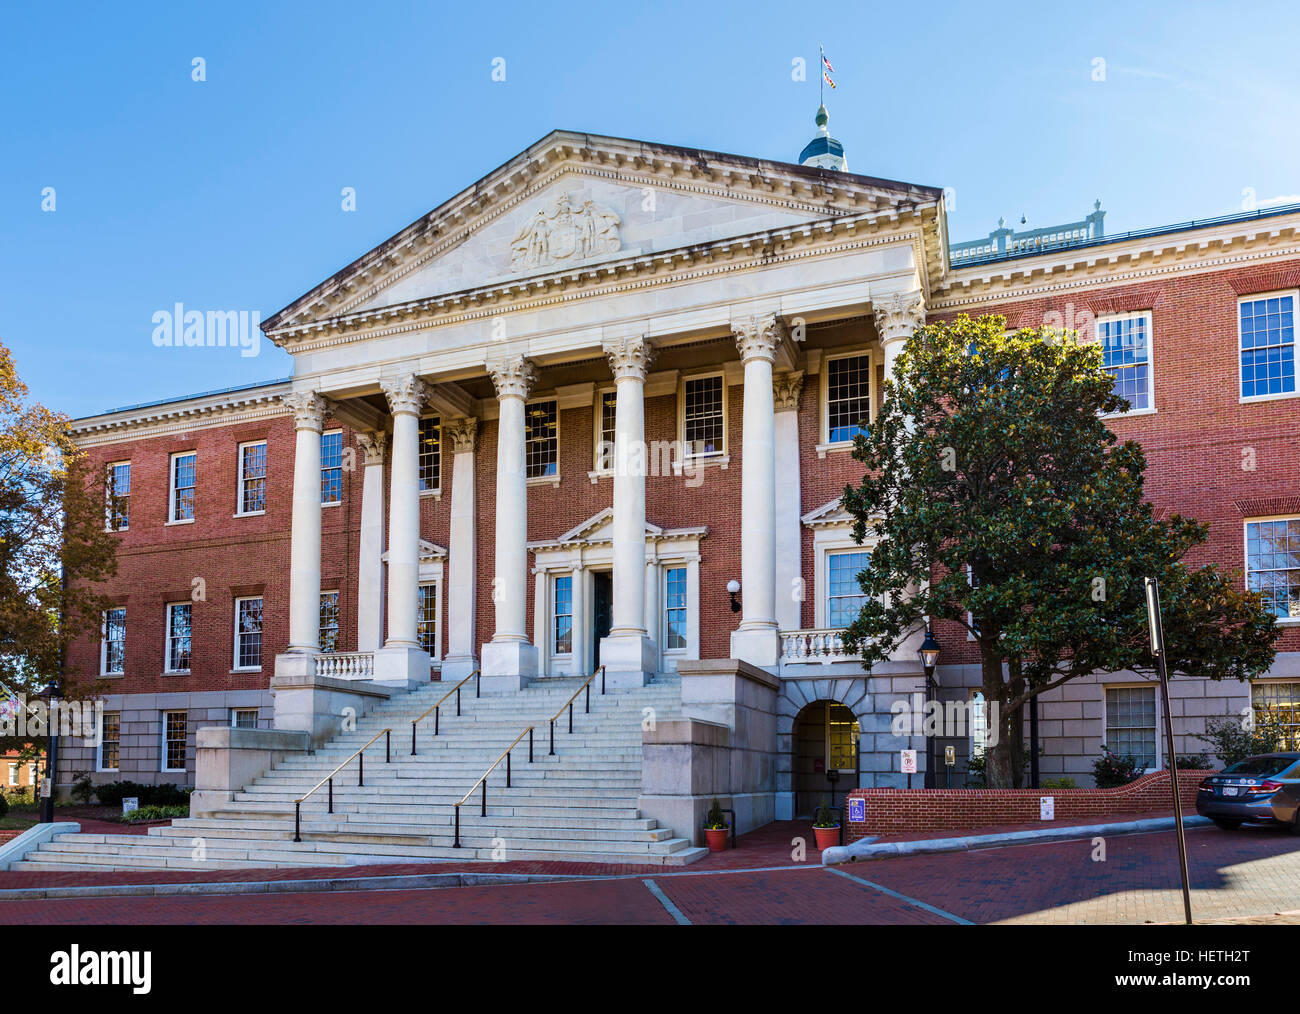 Maryland State House, Annapolis, Maryland, USA - Stock Image